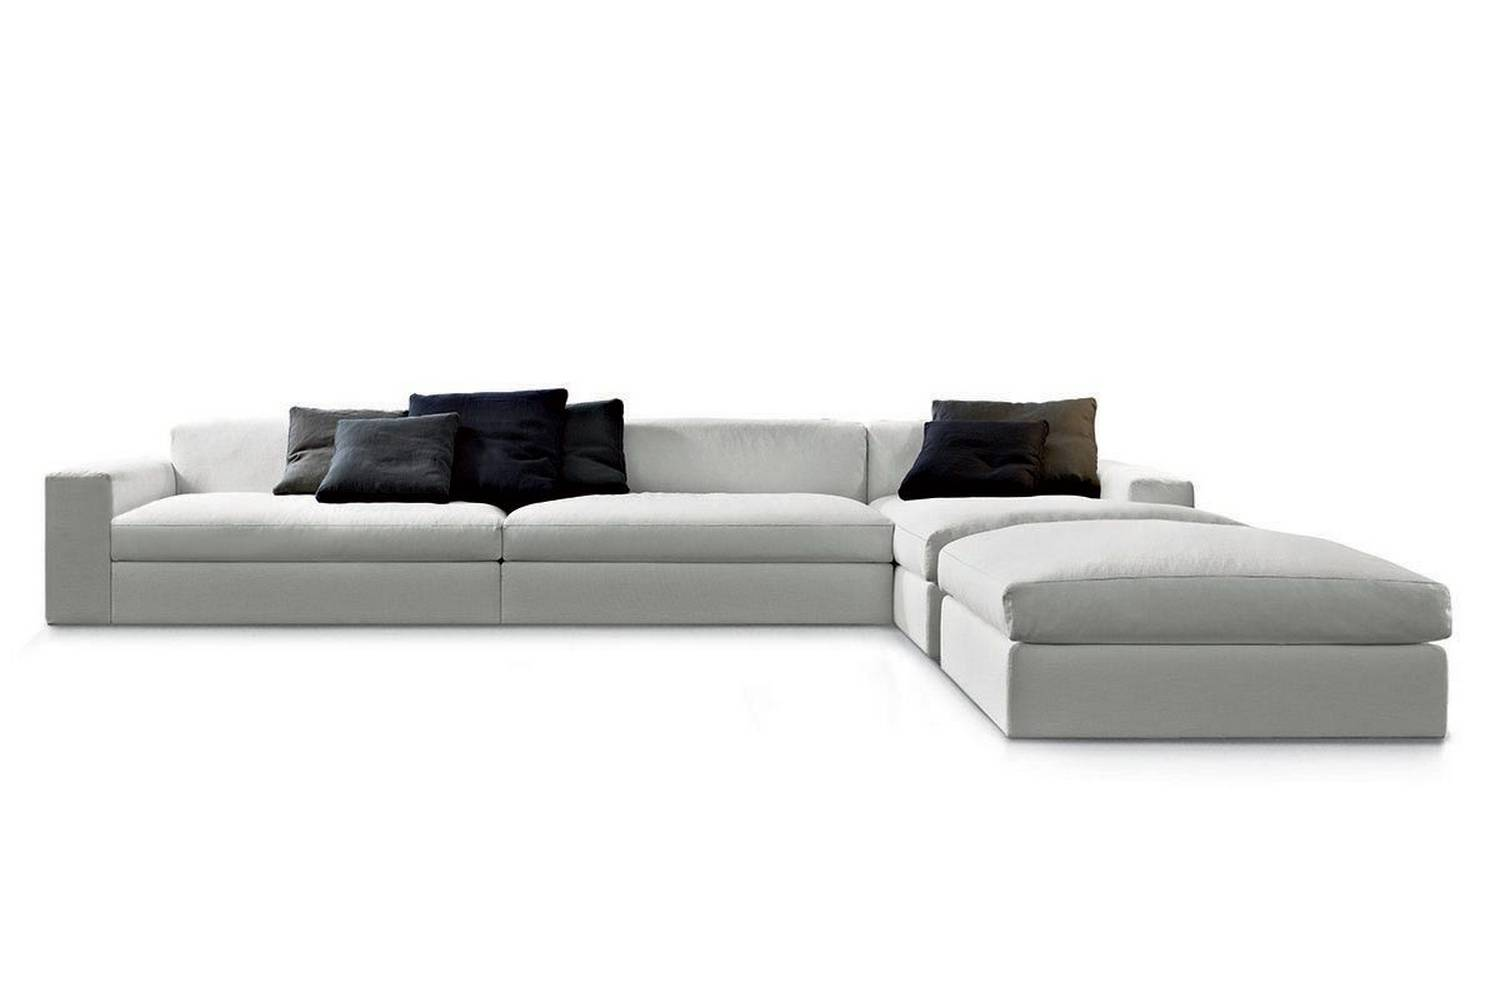 dune sofa loveseat beds 77 by carlo colombo for poliform australia